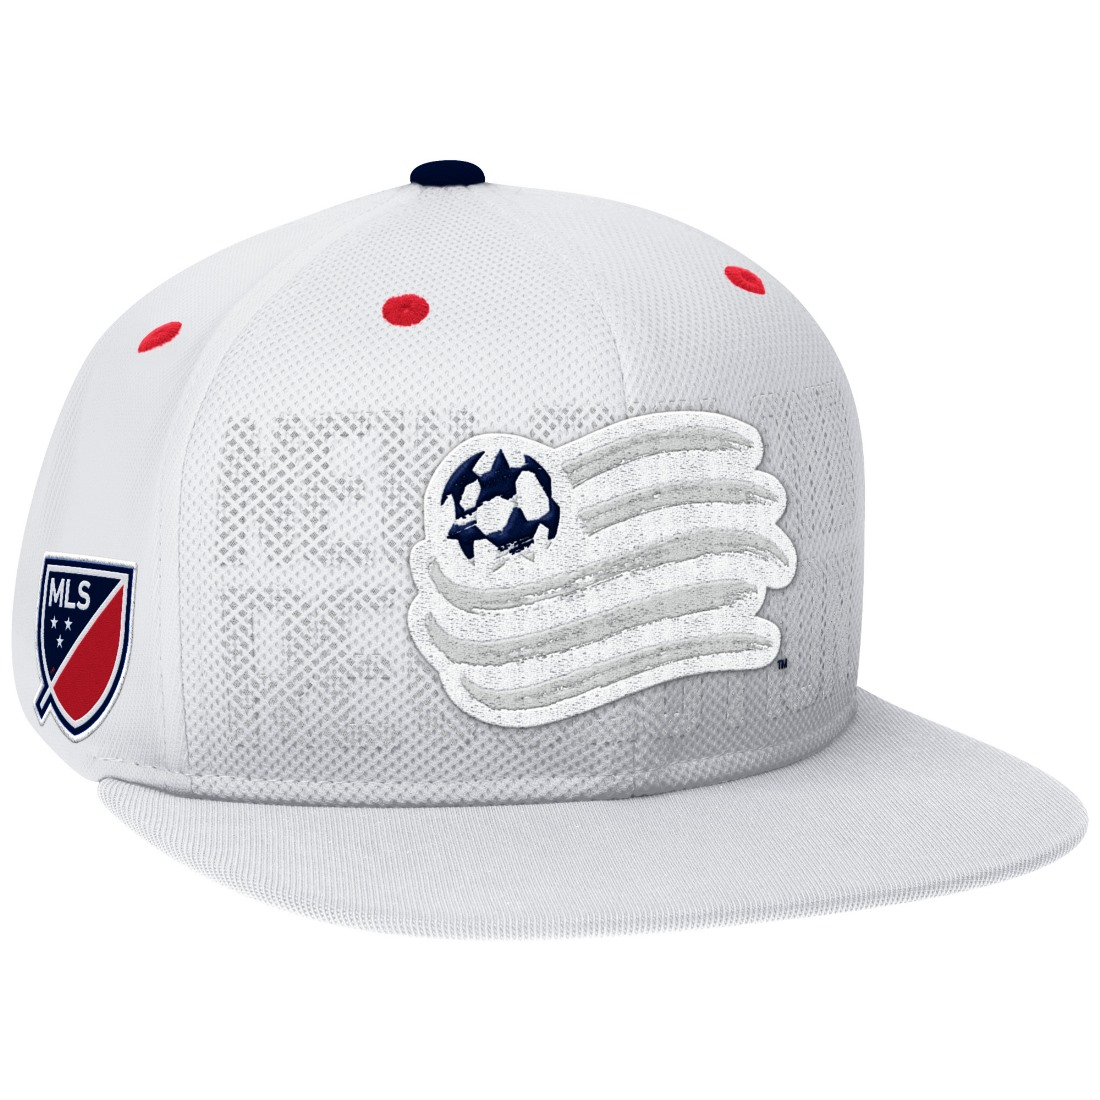 New England Revolution Adidas MLS Authentic Team Performance Snap Back Hat